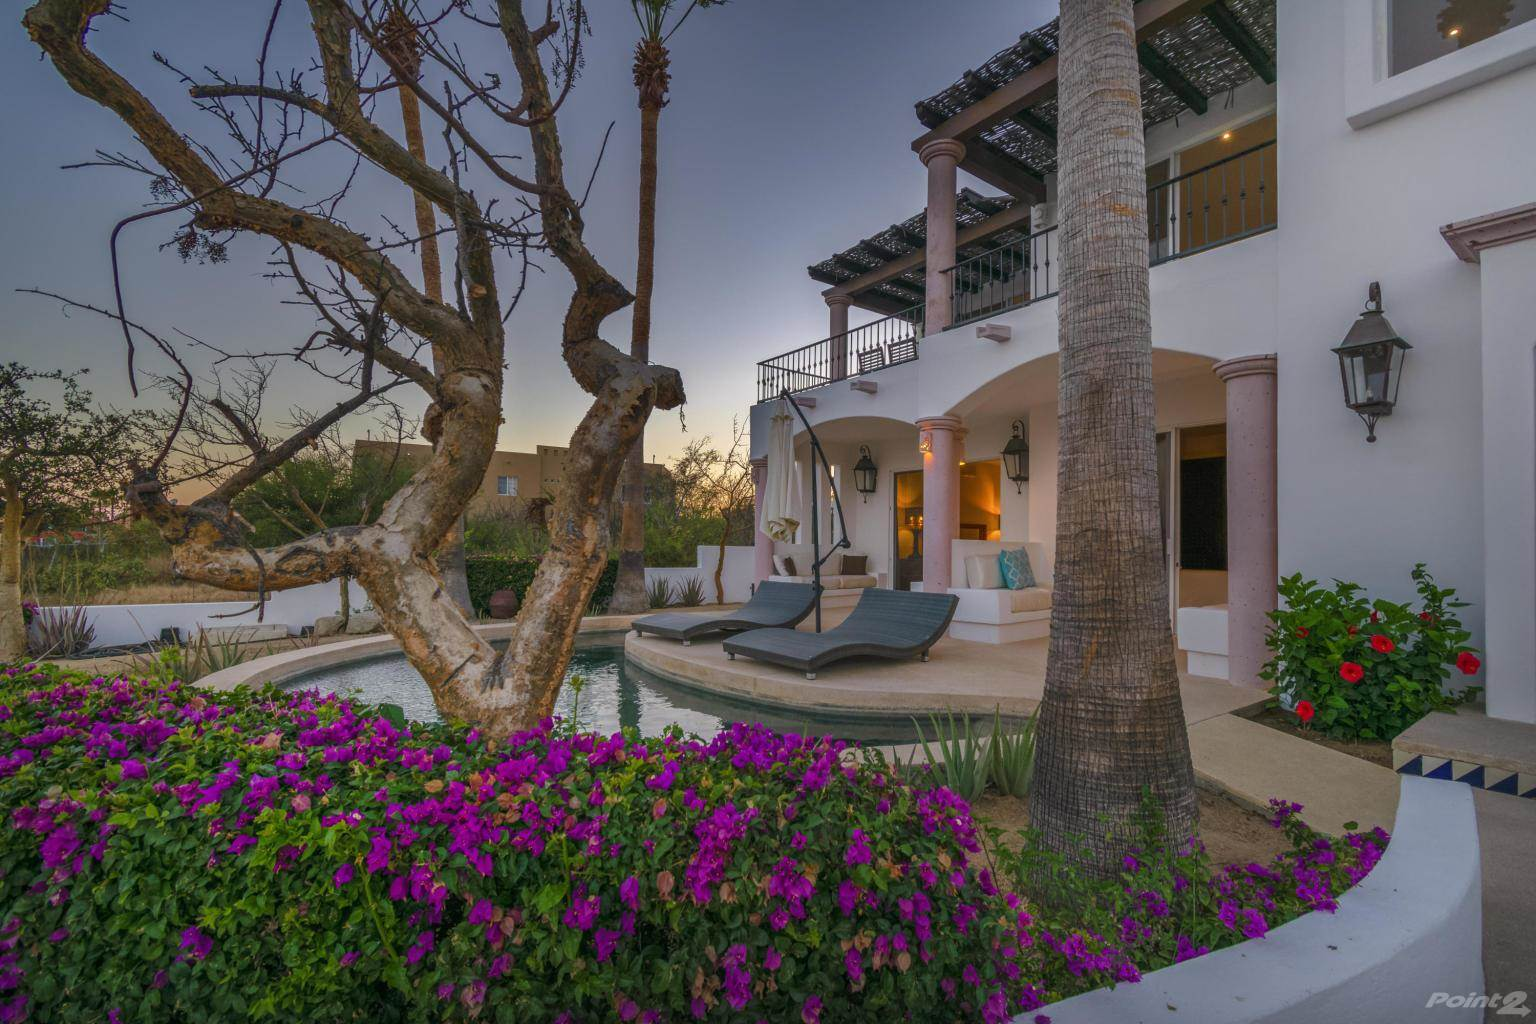 Residential For Sale in FOR SALE AMAZING HOUSE AT CABO BELLO $695,000 USD., Cabo San Lucas, Baja California Sur ,23400  , Mexico